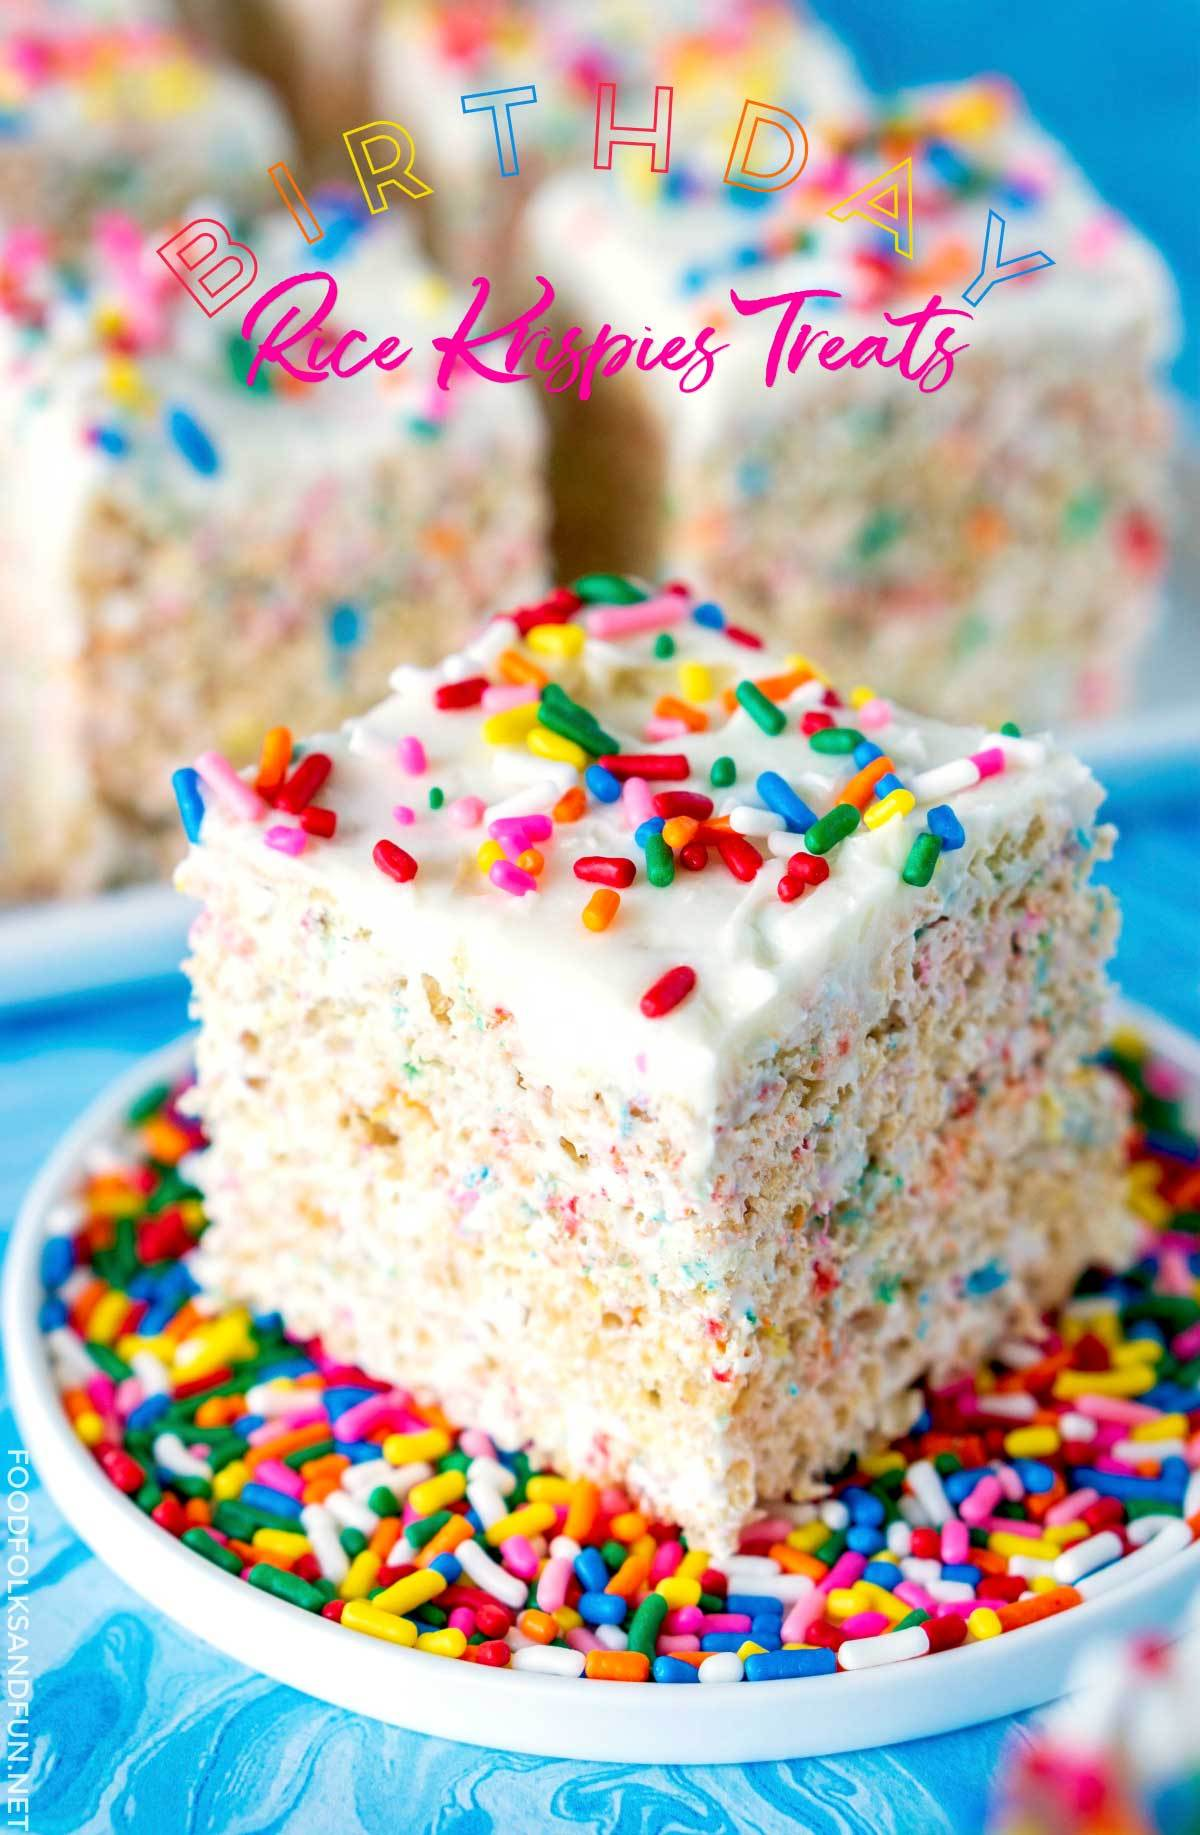 Rice krispies treat filled with rainbow sprinkles and topped with frosting.